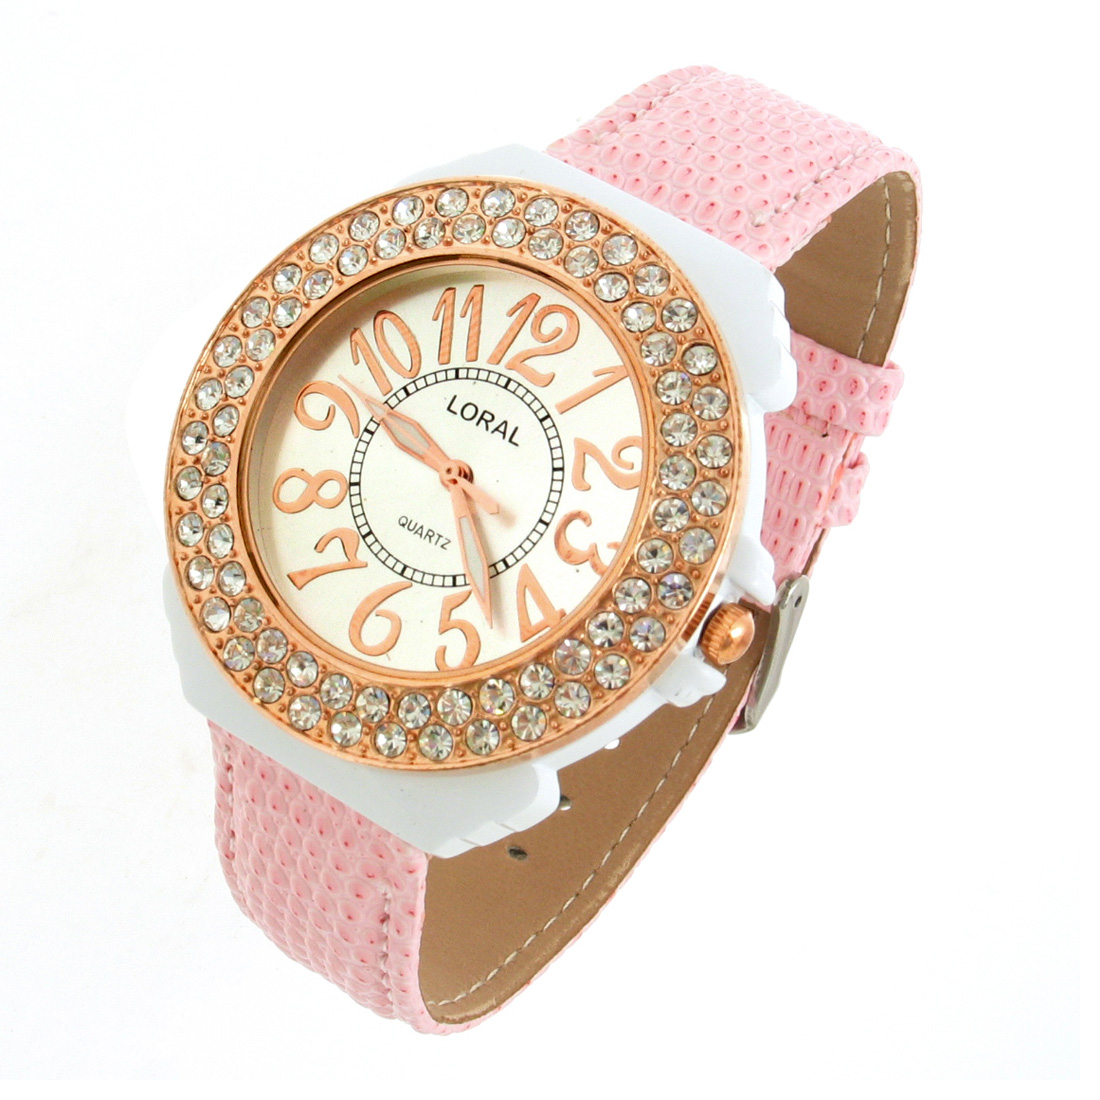 Fashion Jewelry Pink Faux Leather Wrist with Crystal Style Watchcase Quartz Watch